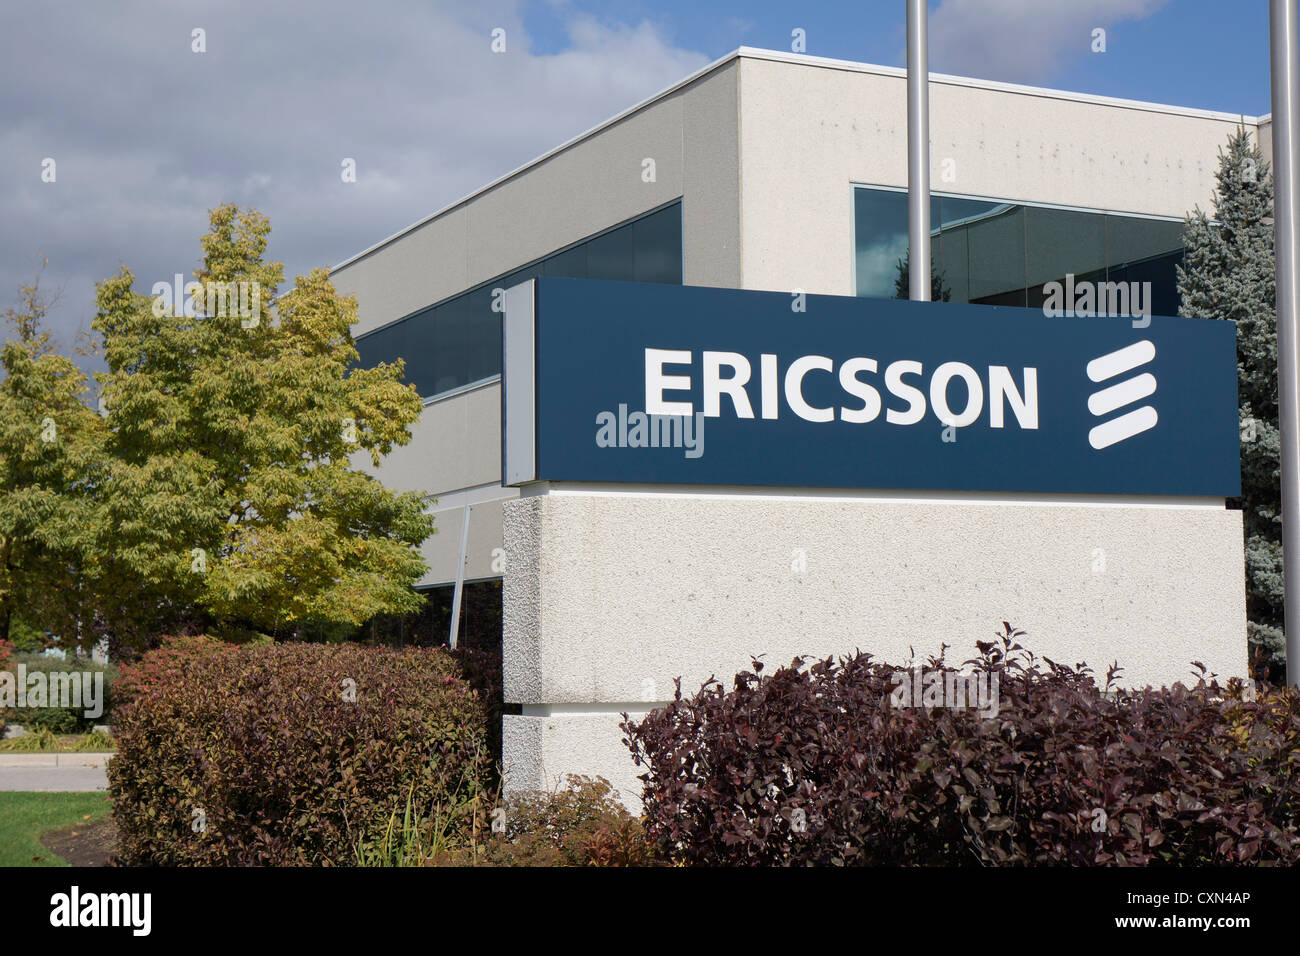 Ericsson, company sign outside office - Stock Image